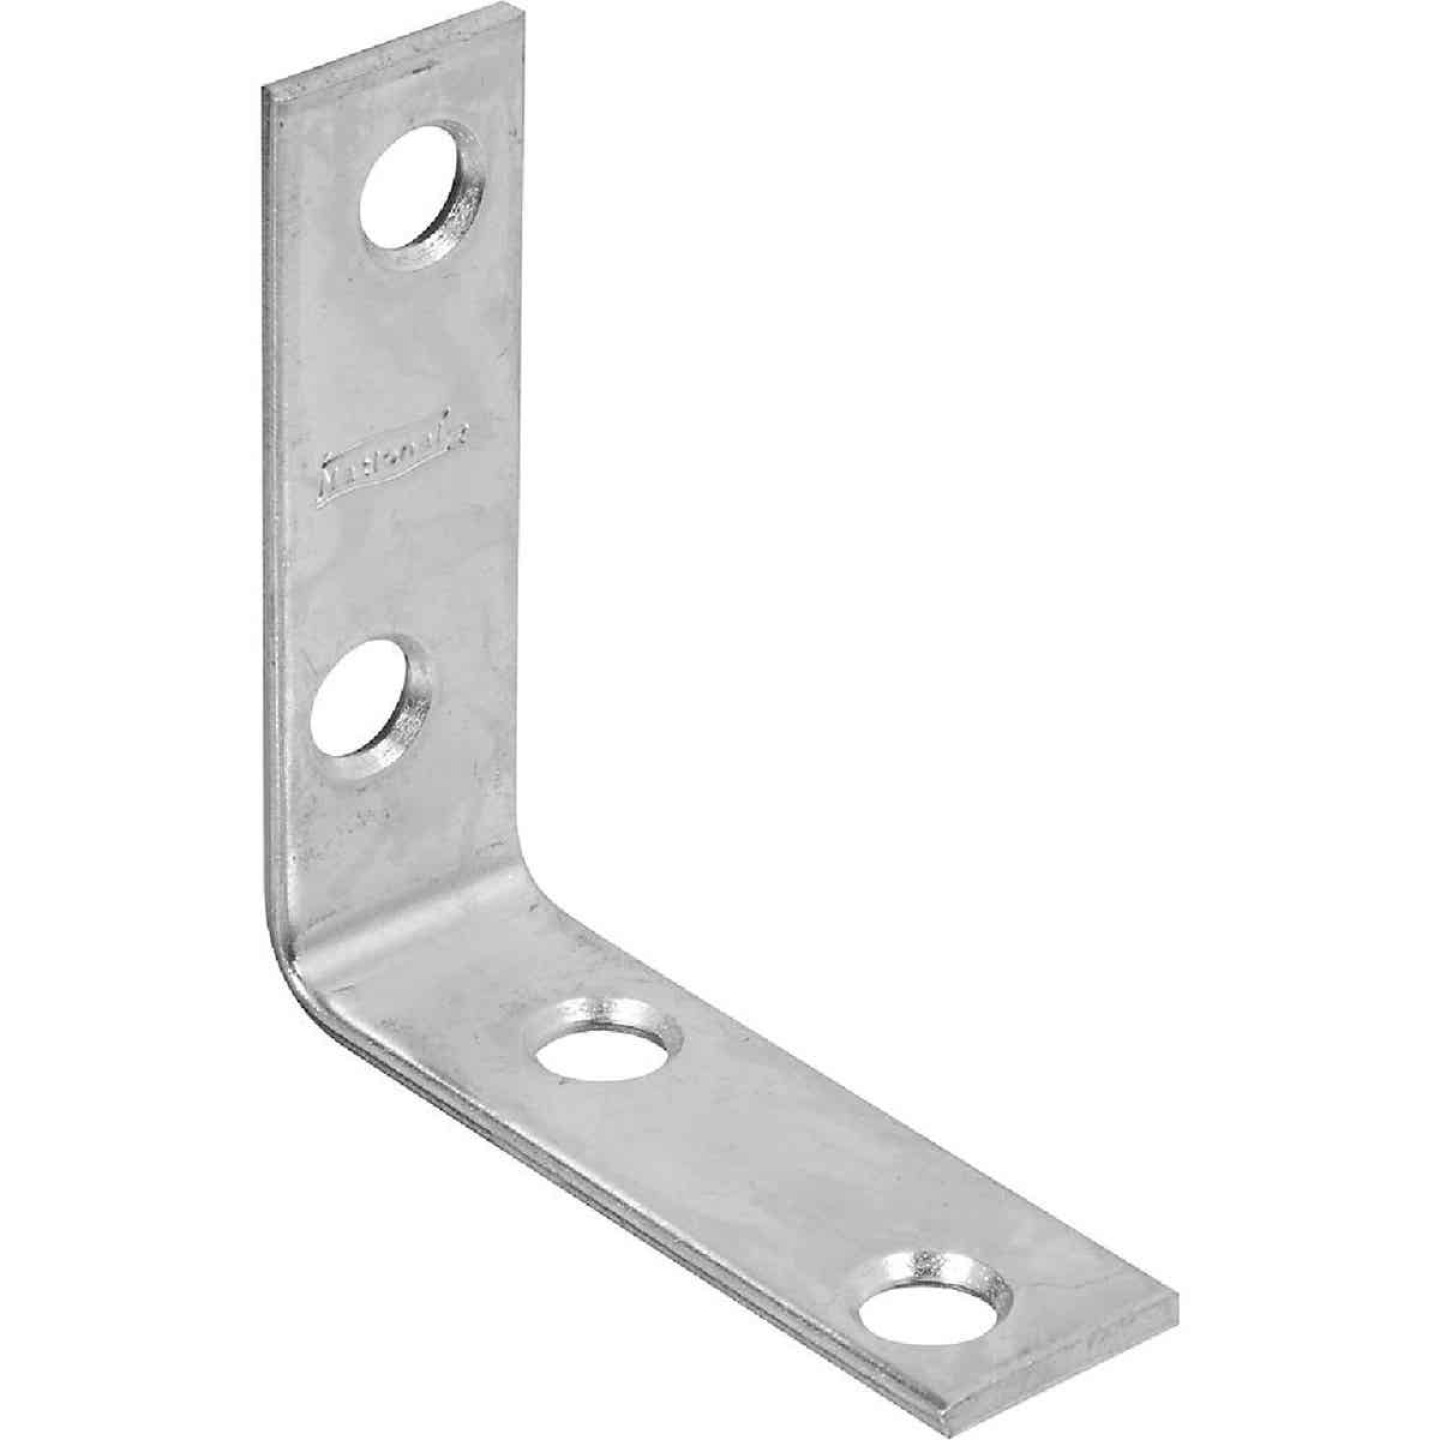 National Catalog 115 2 In. x 5/8 In. Zinc Corner Brace Image 1